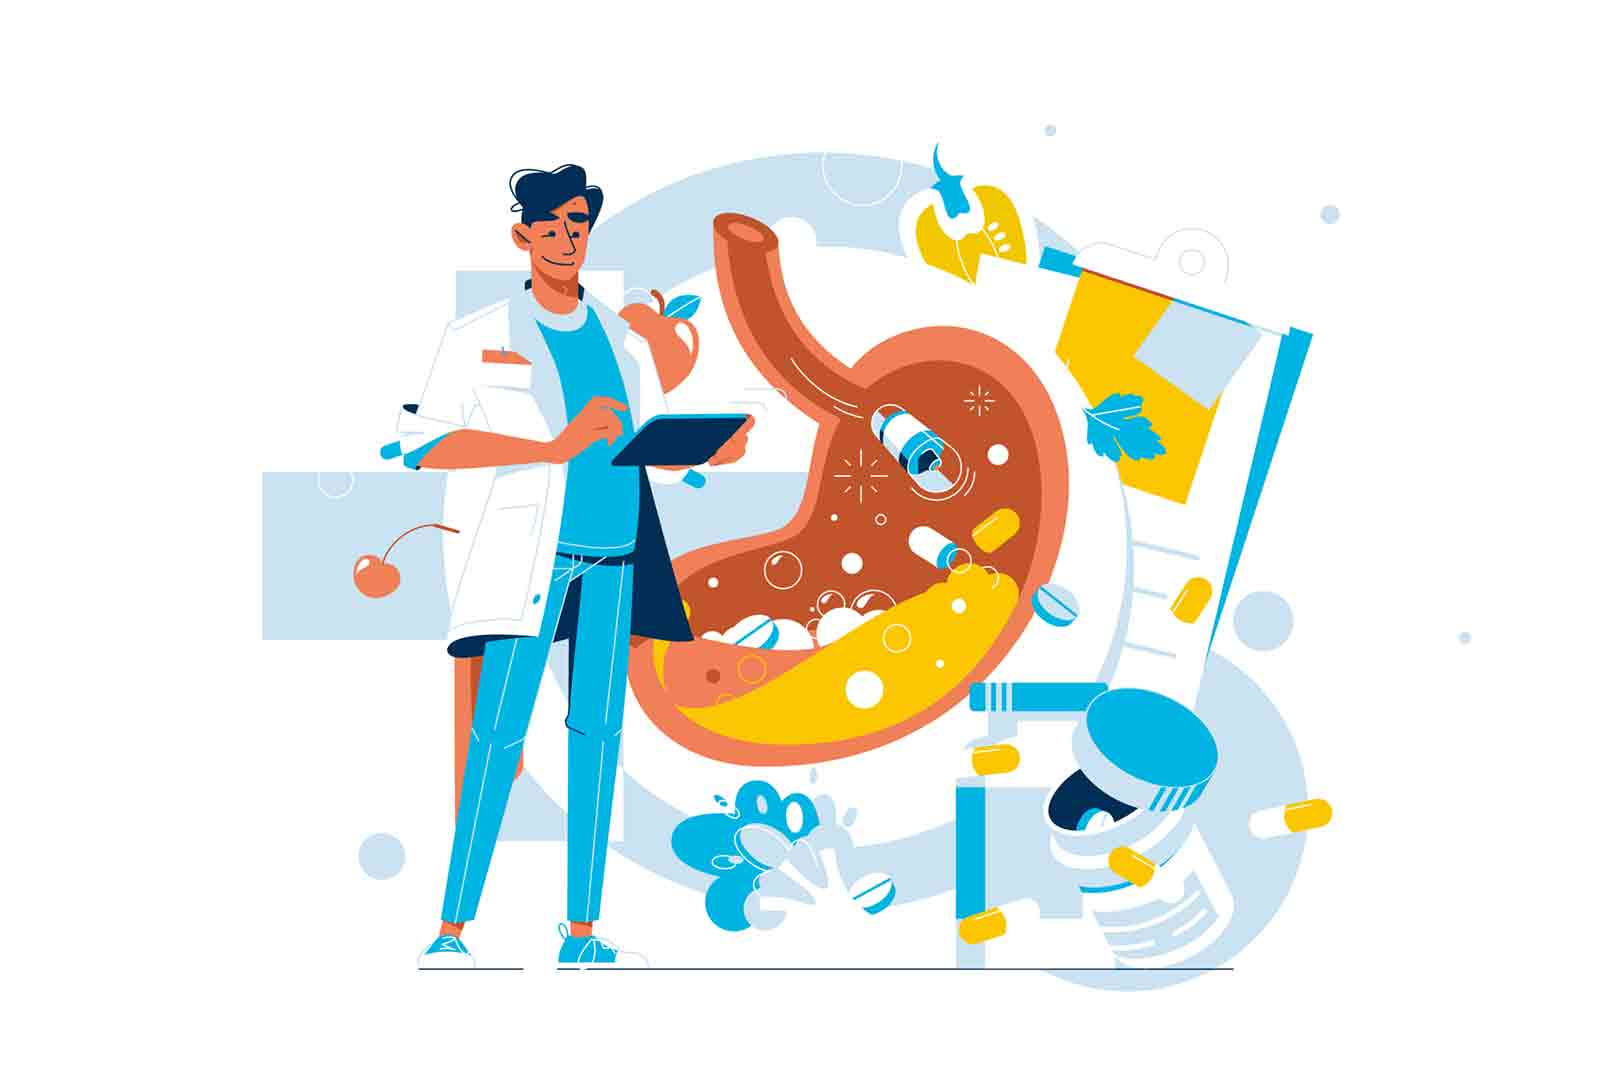 Doctor examine disease and treat stomach vector illustration. Checkup, xray diagnosis flat style. Gastroenterology, medicine, health concept